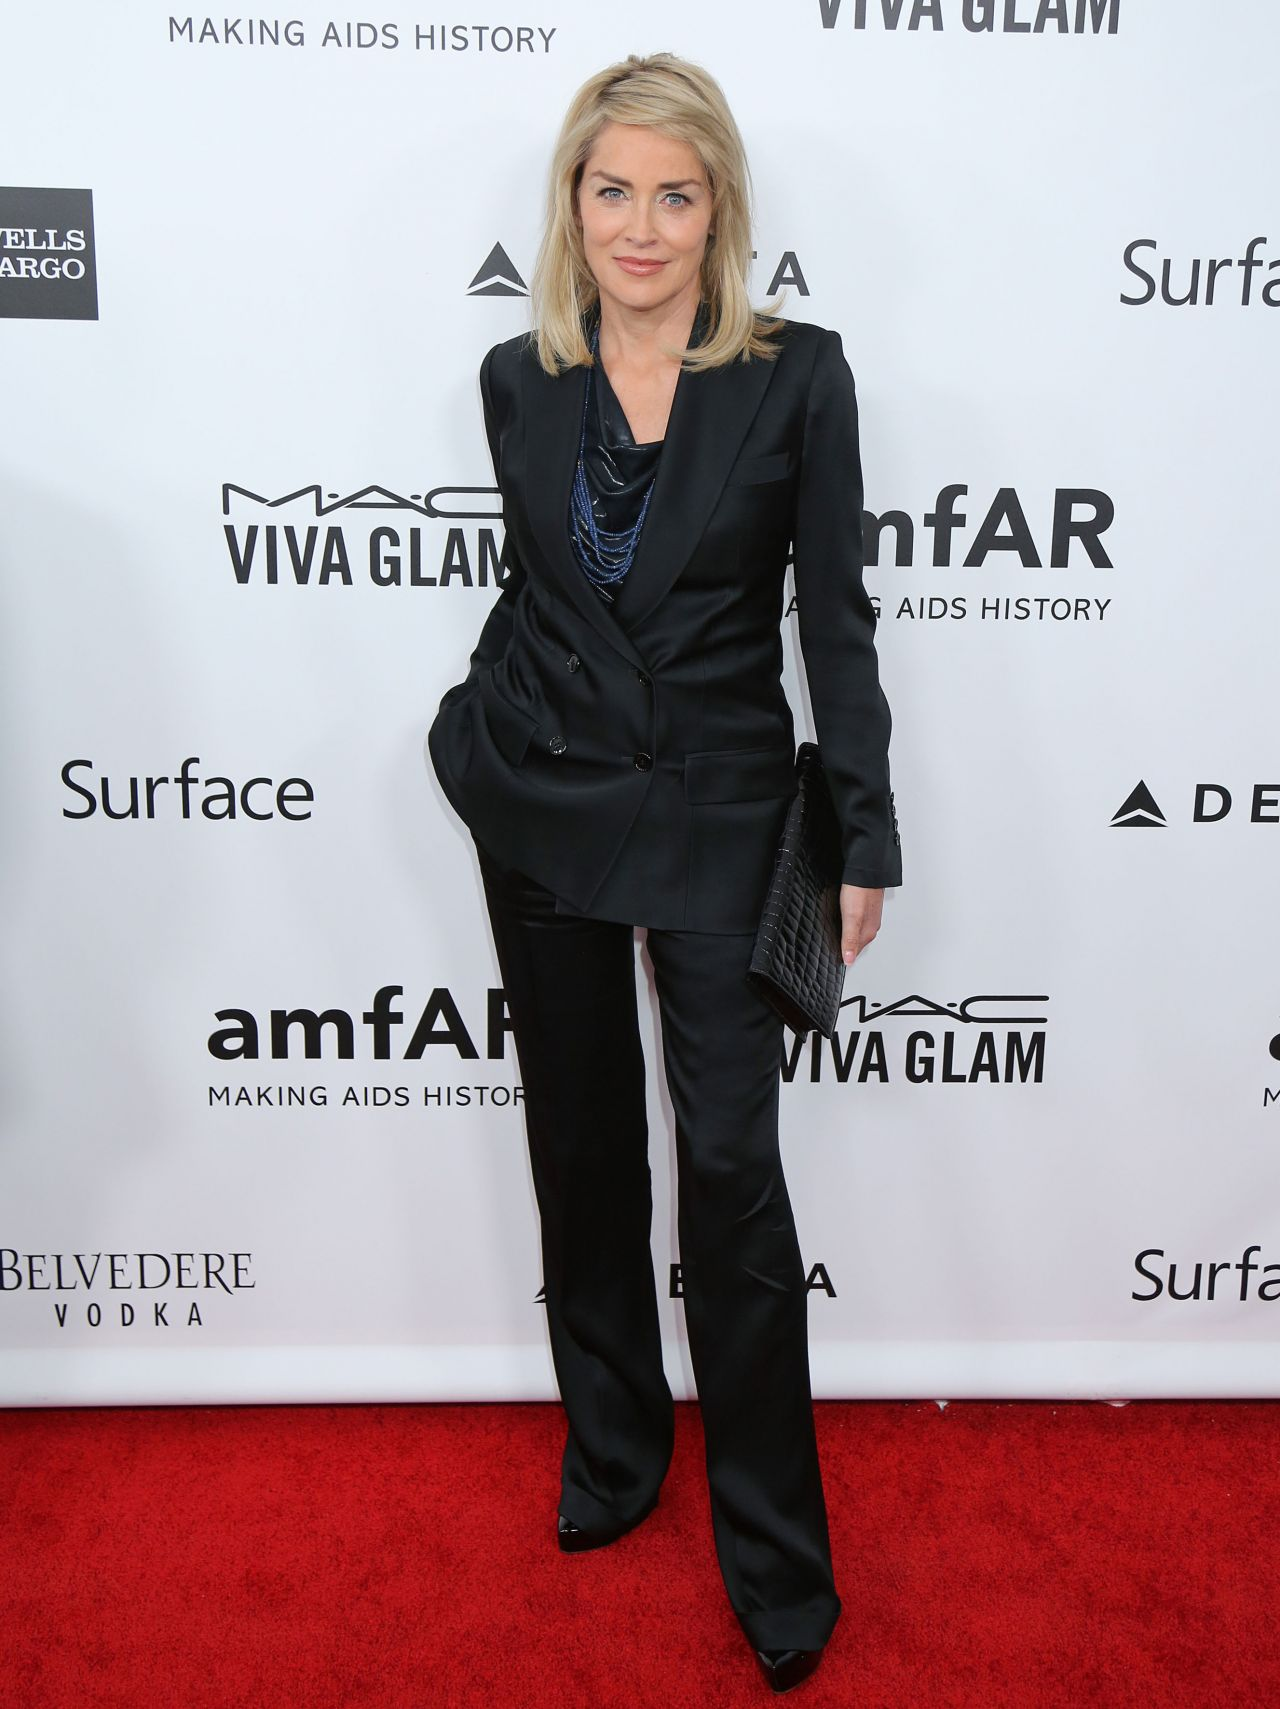 Sharon Stone at 2013 amFAR Inspiration Gala Los Angeles in LA - December 2013